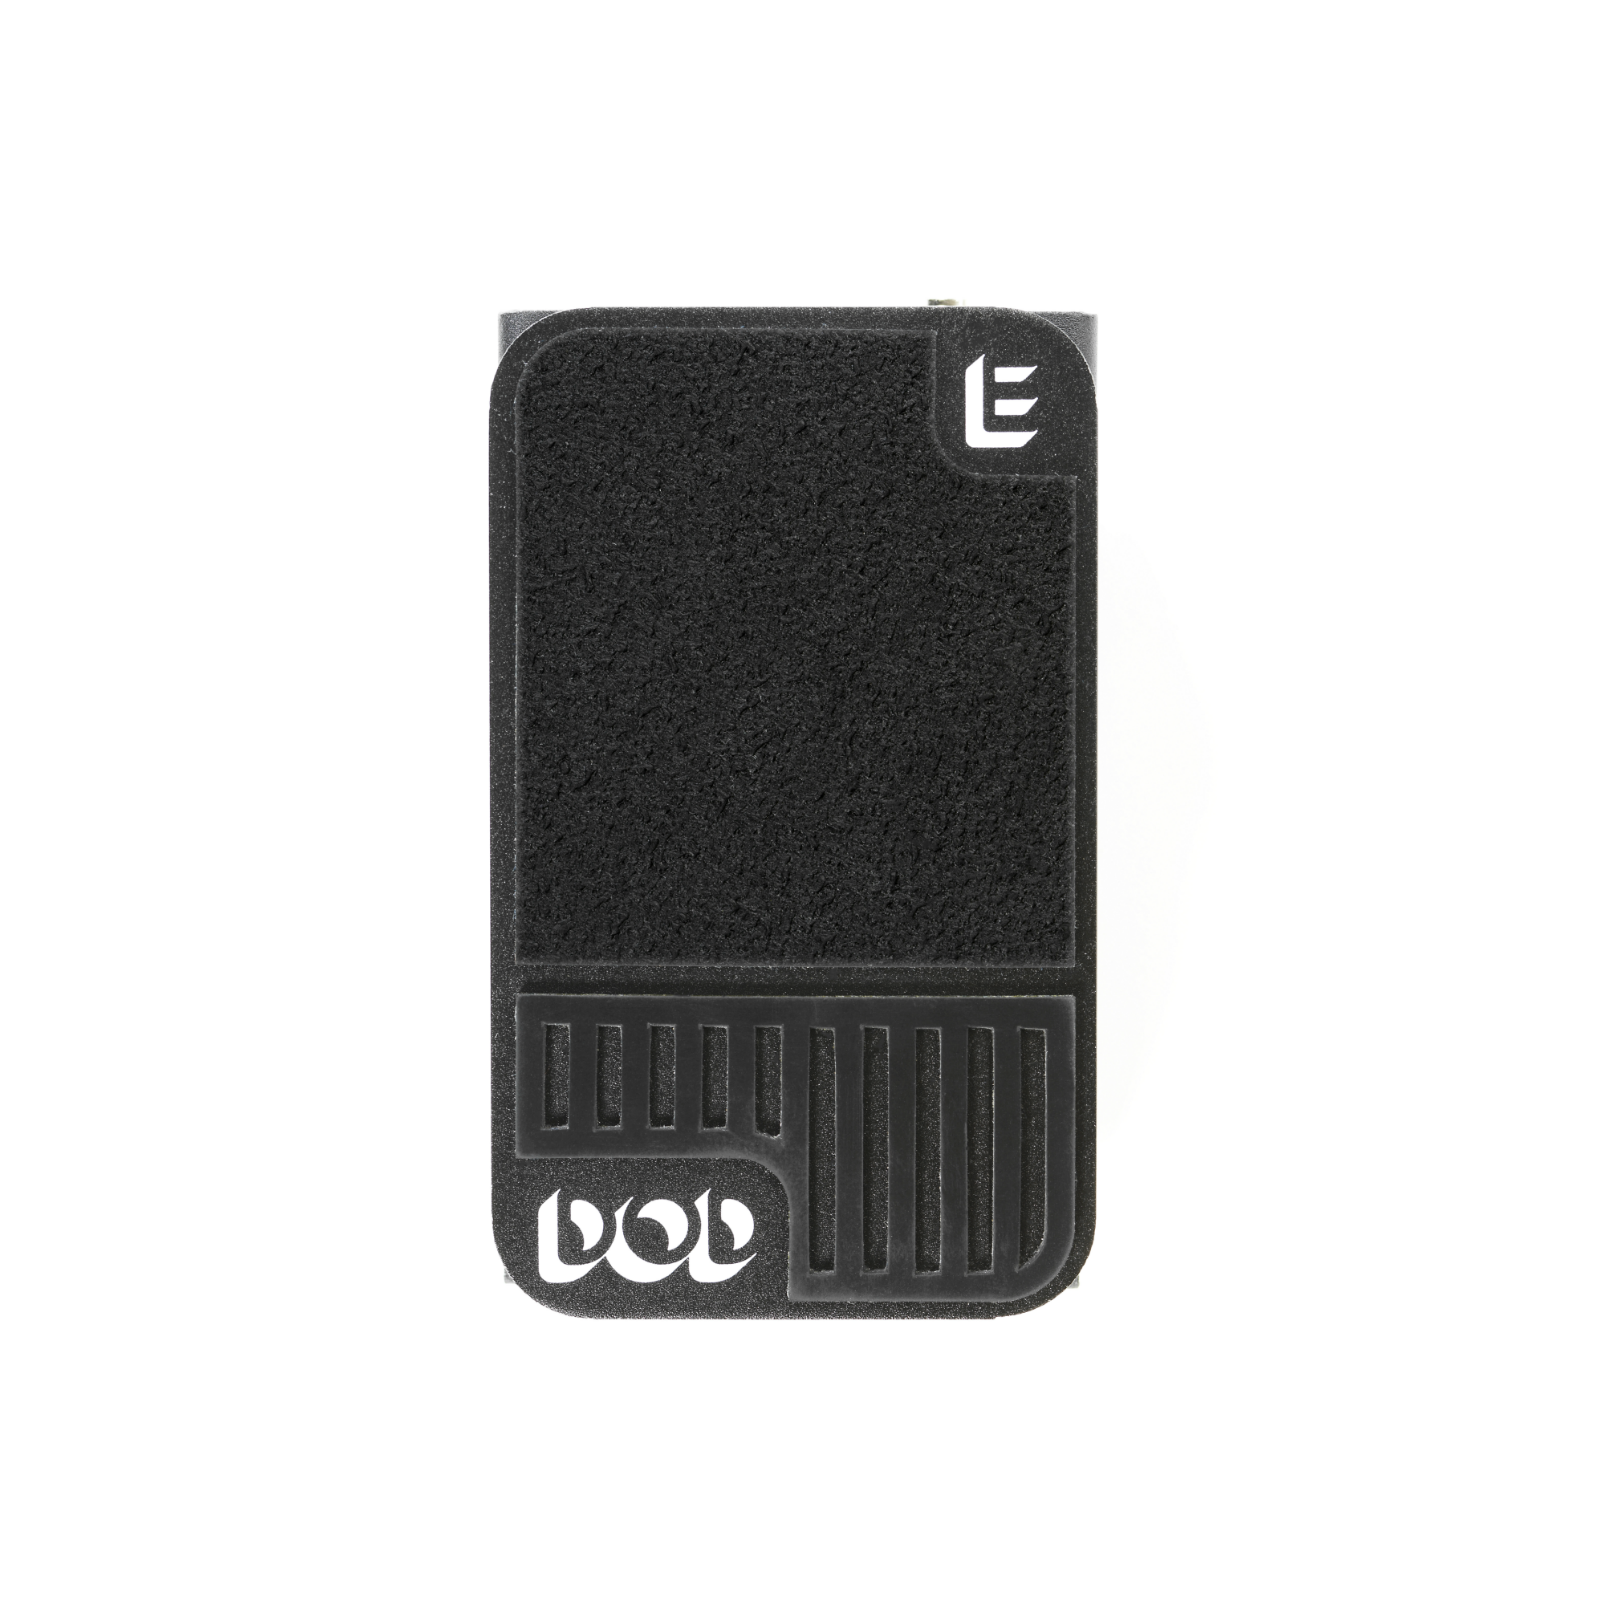 DOD Mini Expression - Black - Expression Pedal - Front